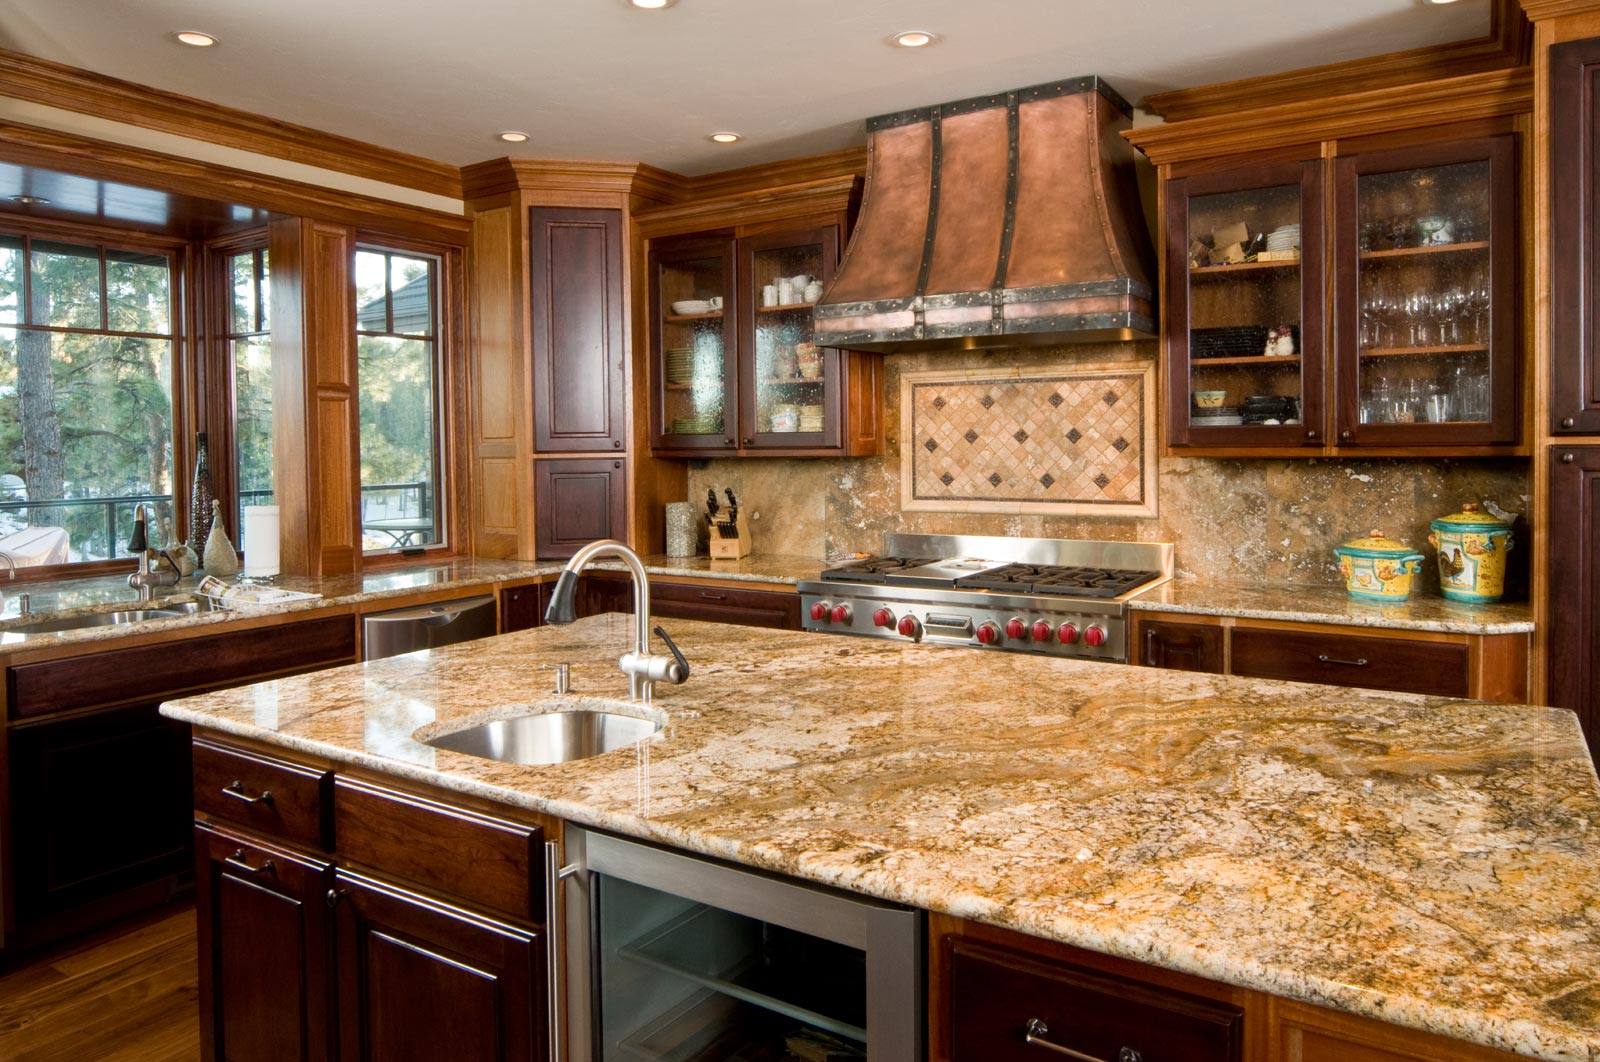 Superbe Quartz Countertops: How To Decide?